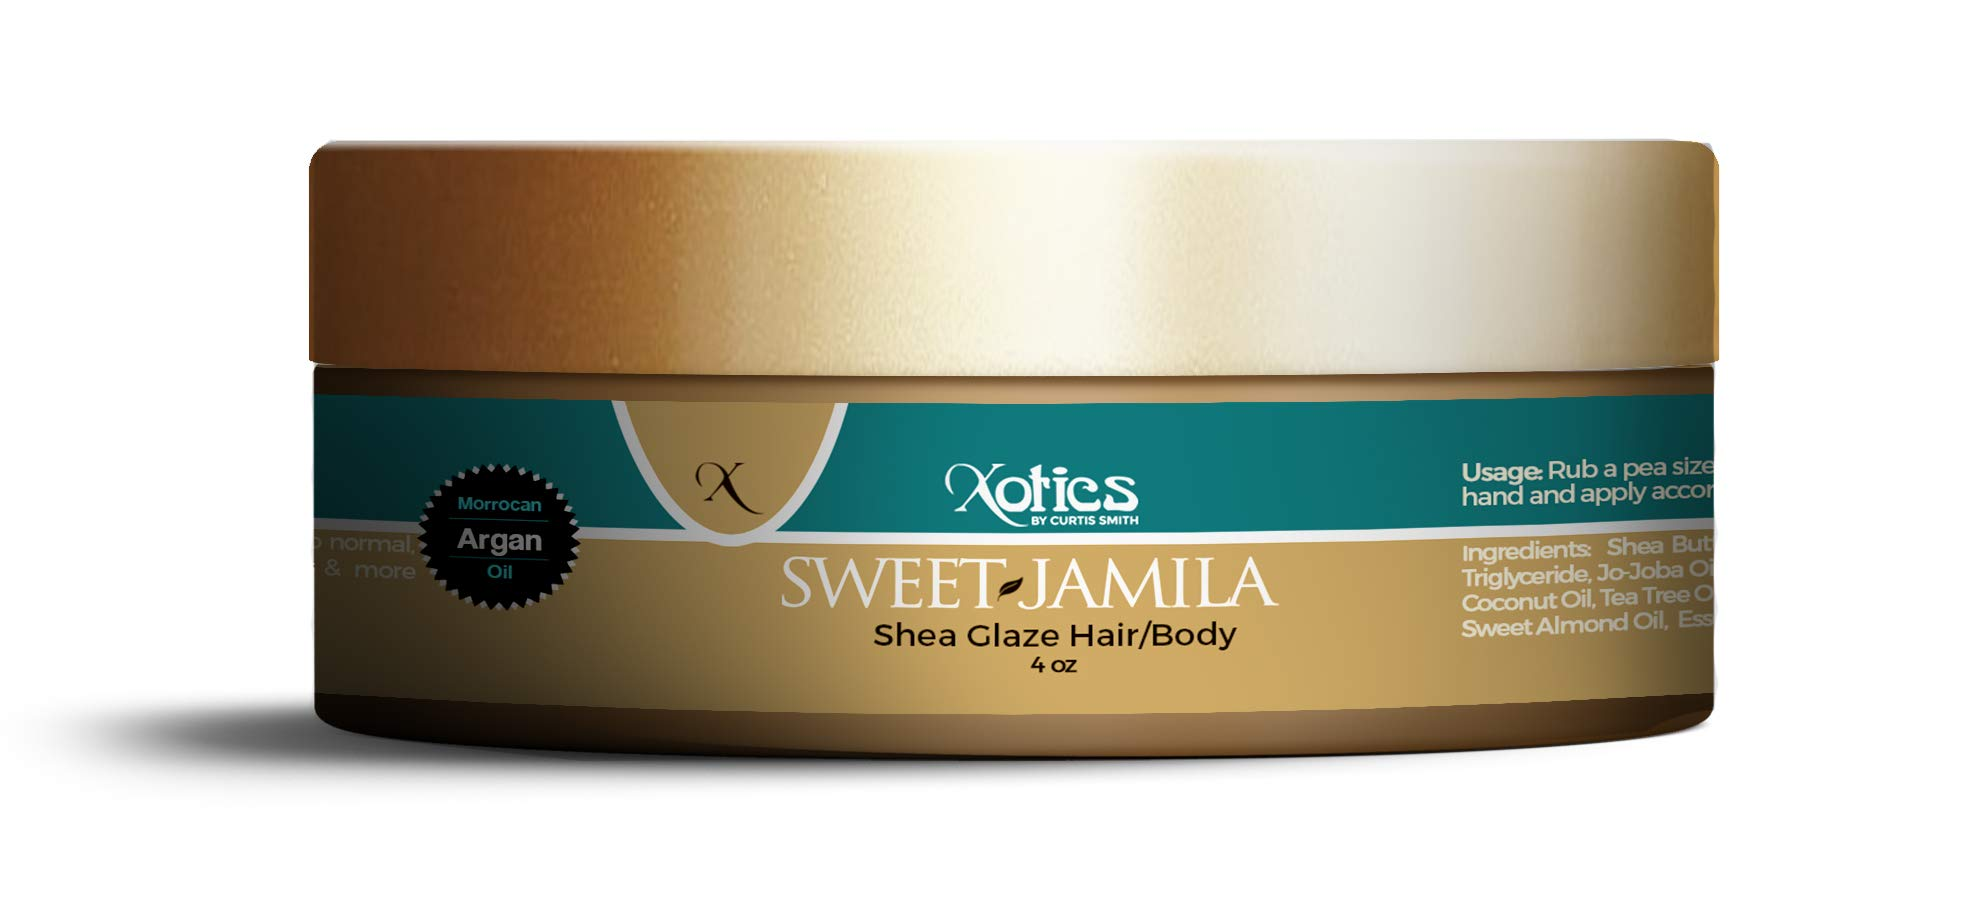 Xotics by Curtis Smith Sweet Jamila Hair & Body Shea Glaze - 4 oz | Professionally Formulated Shea Butter & Essential Oil Fusion | Nourish, Protect & Support Healthy Hair and Skin by Xotics